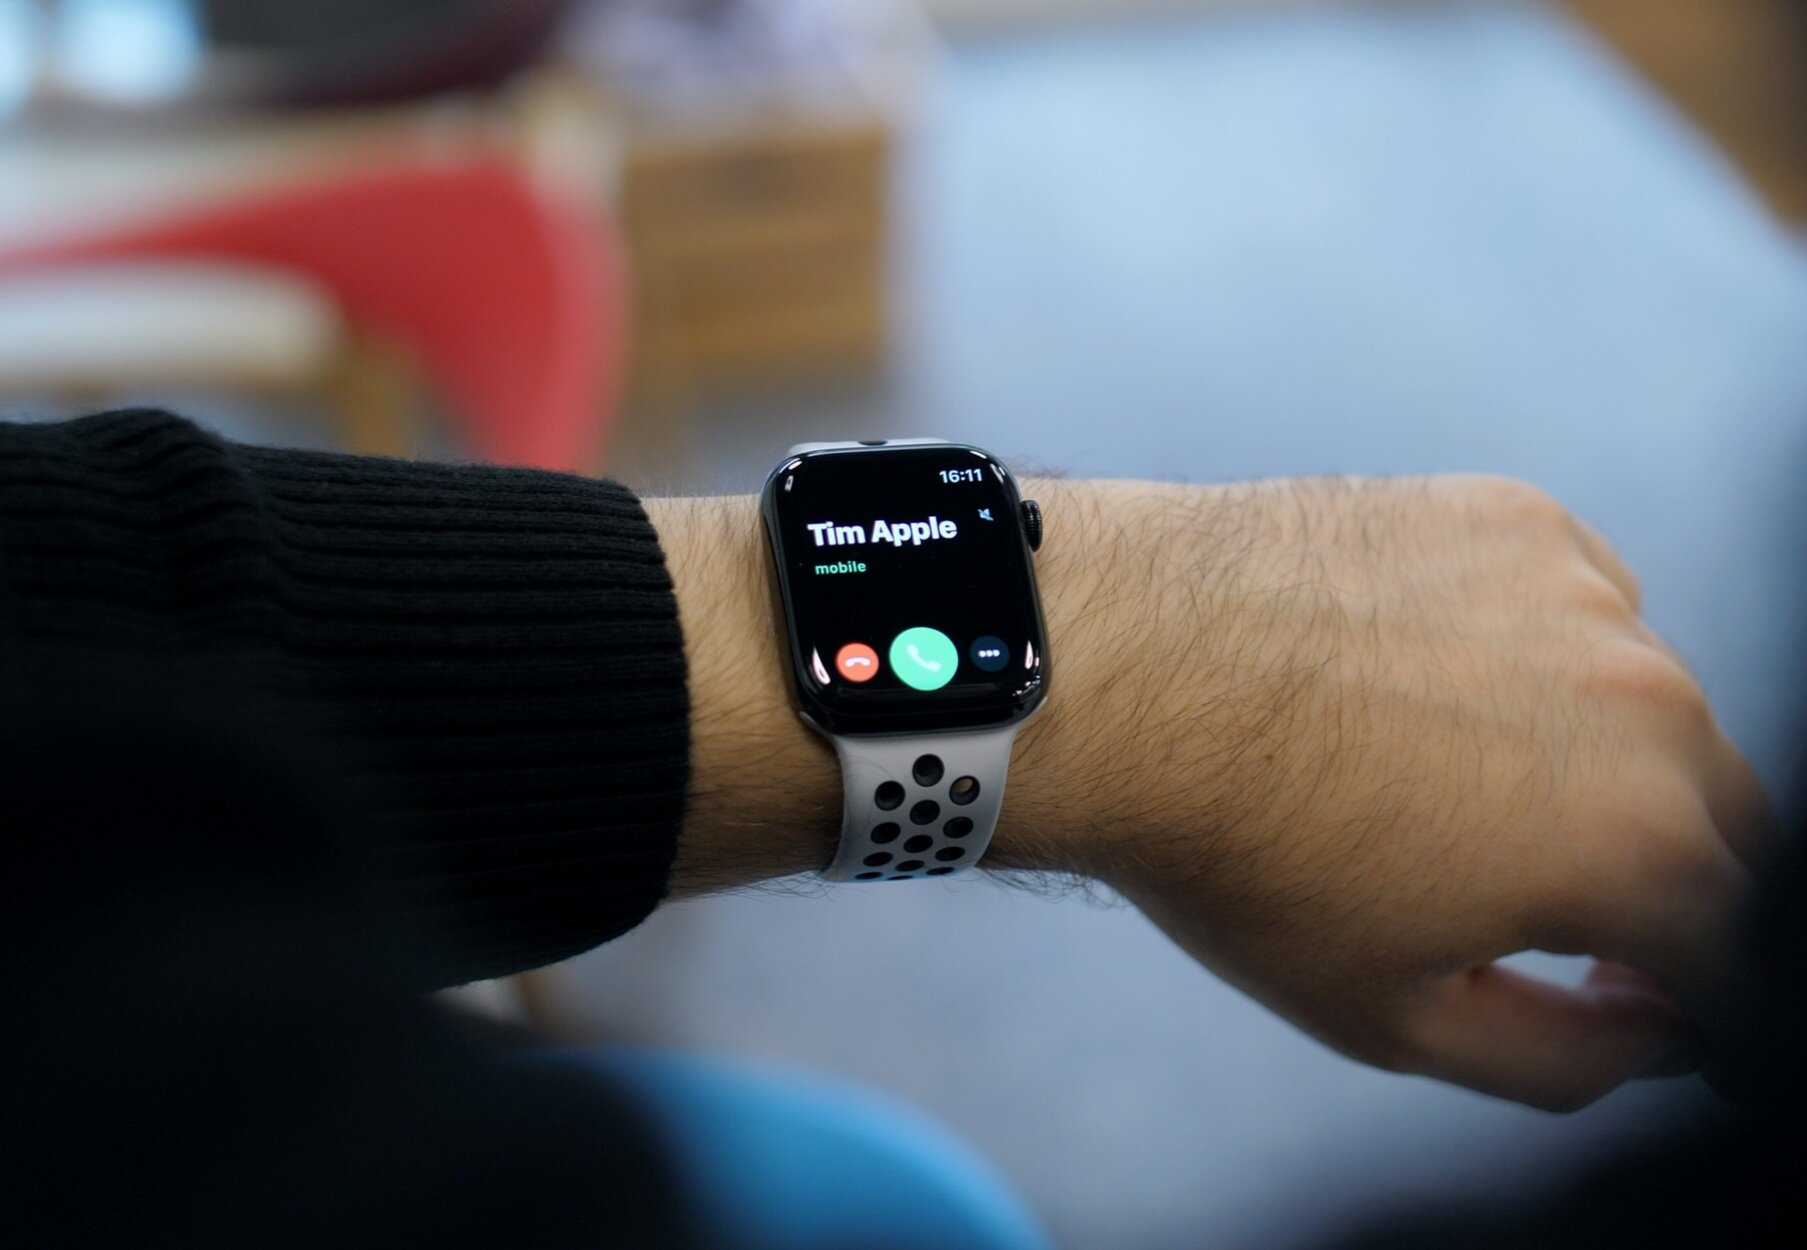 The ability to make calls on the Apple Watch means that it almost negates the need for a phone